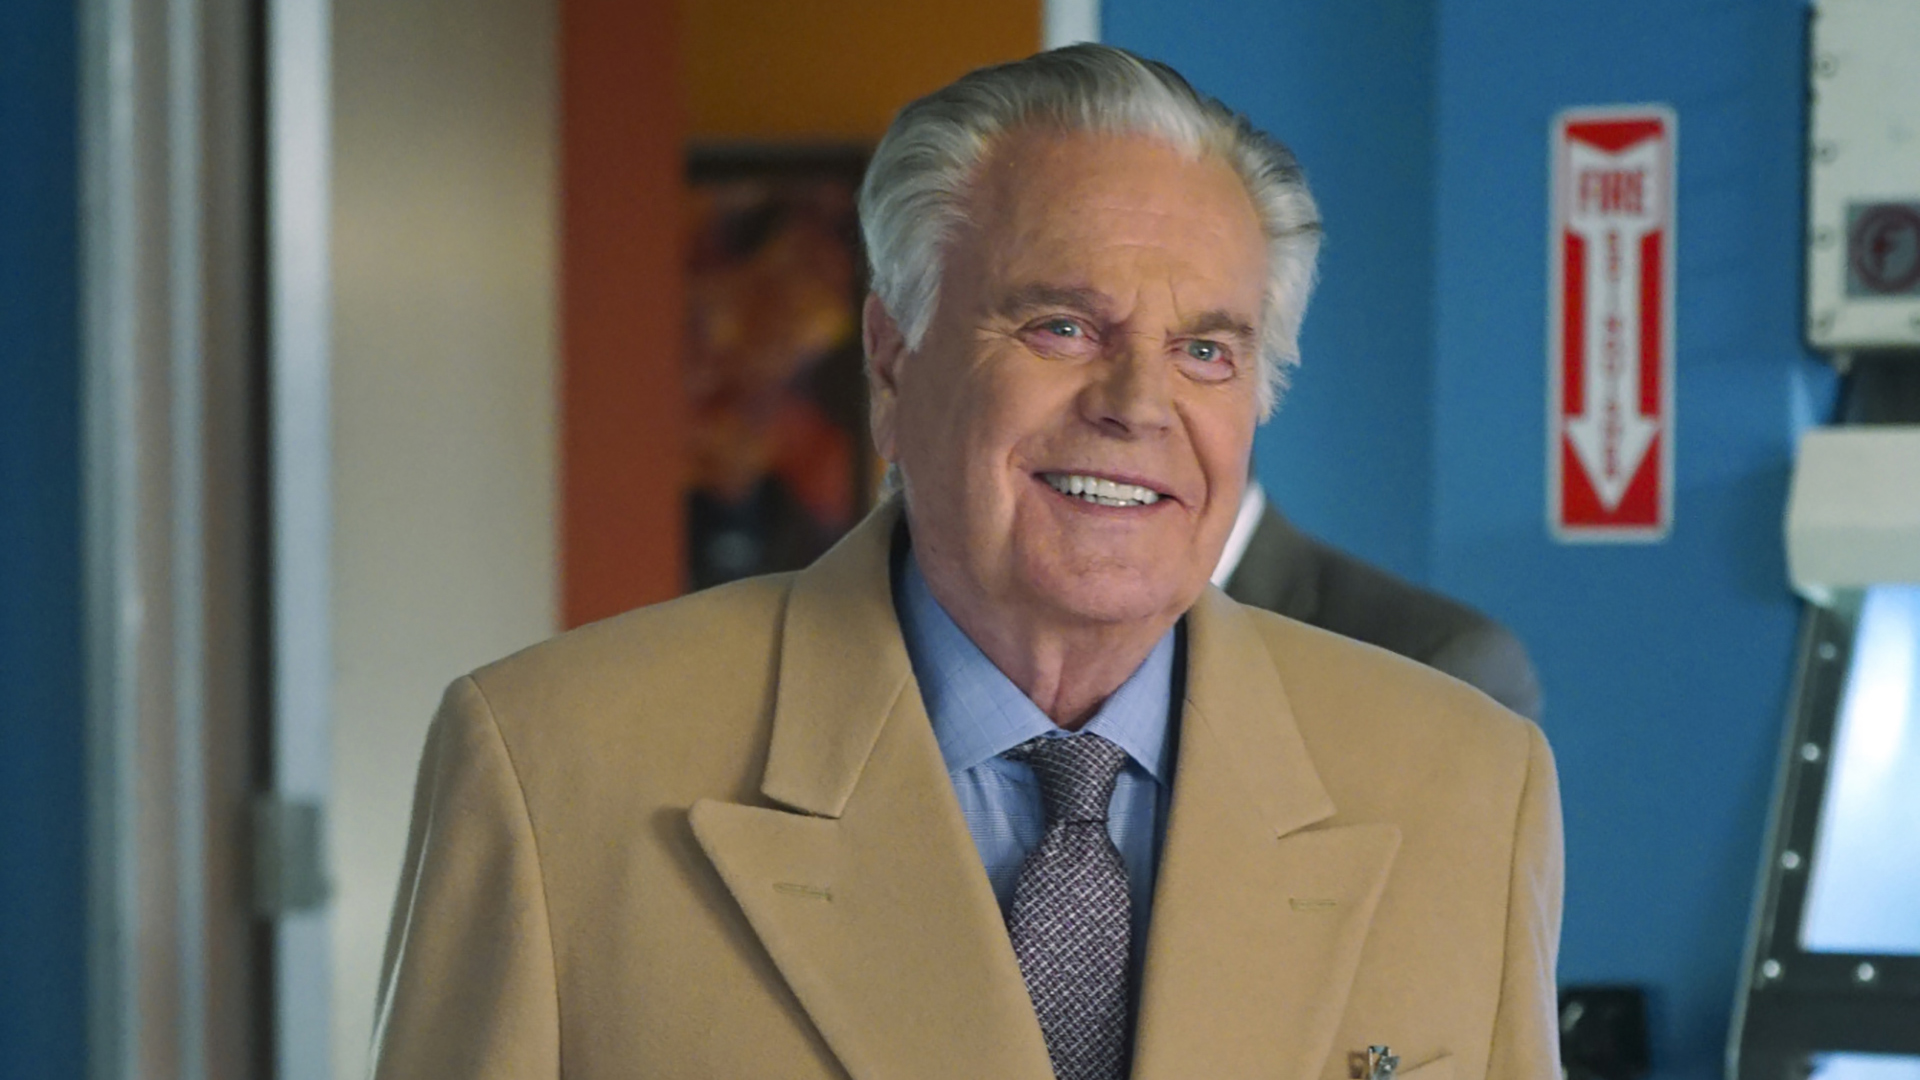 DiNozzo, Sr. looks happy to be back at NCIS HQ.